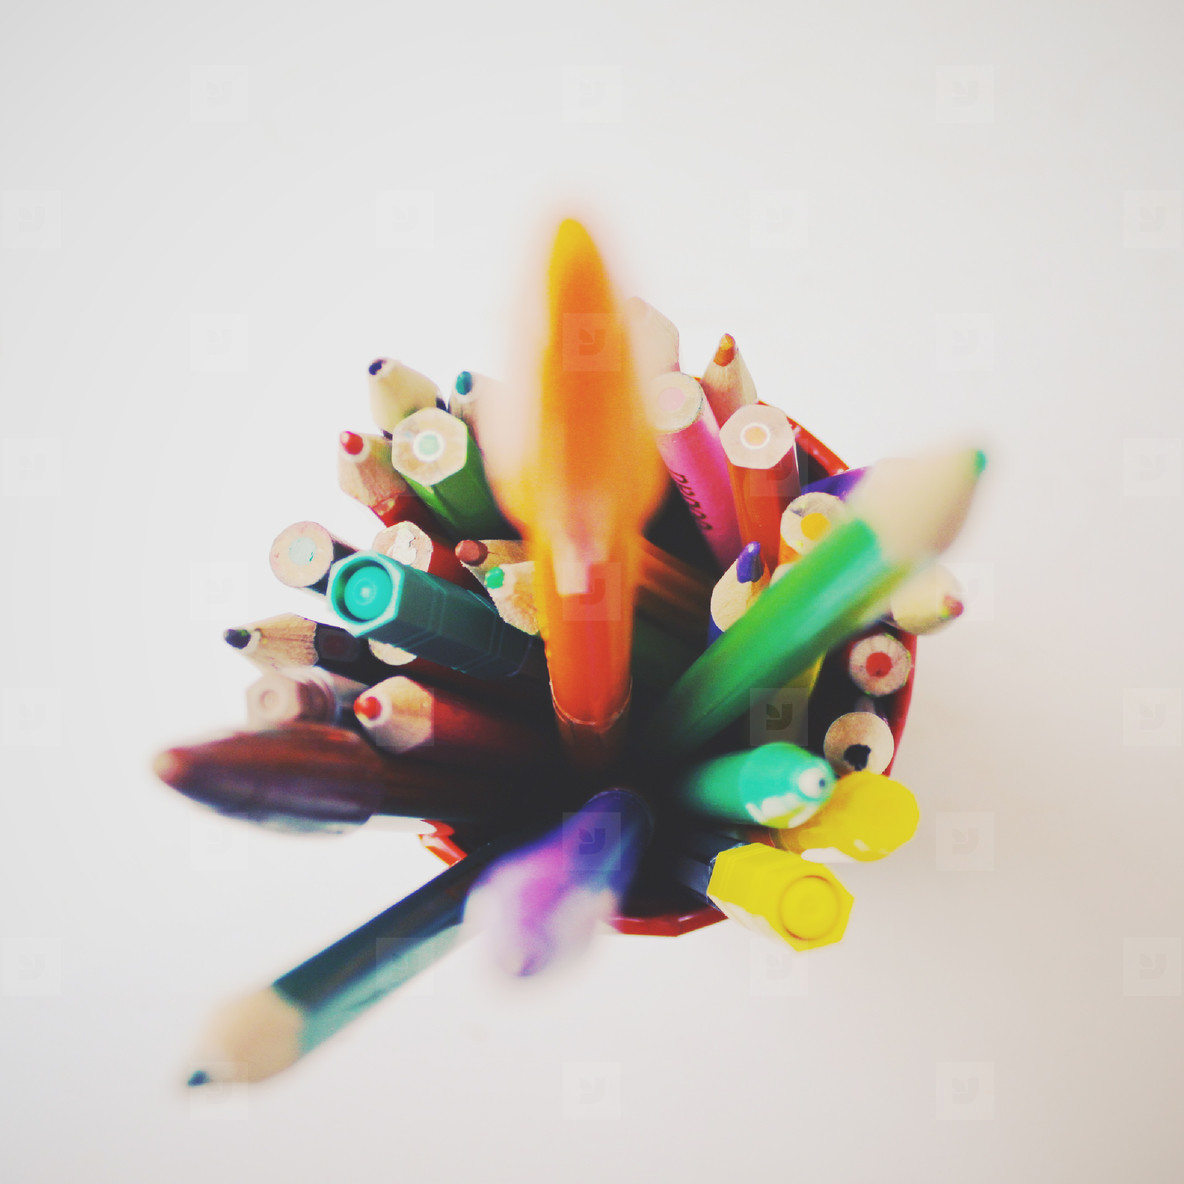 Group of crayons and pens